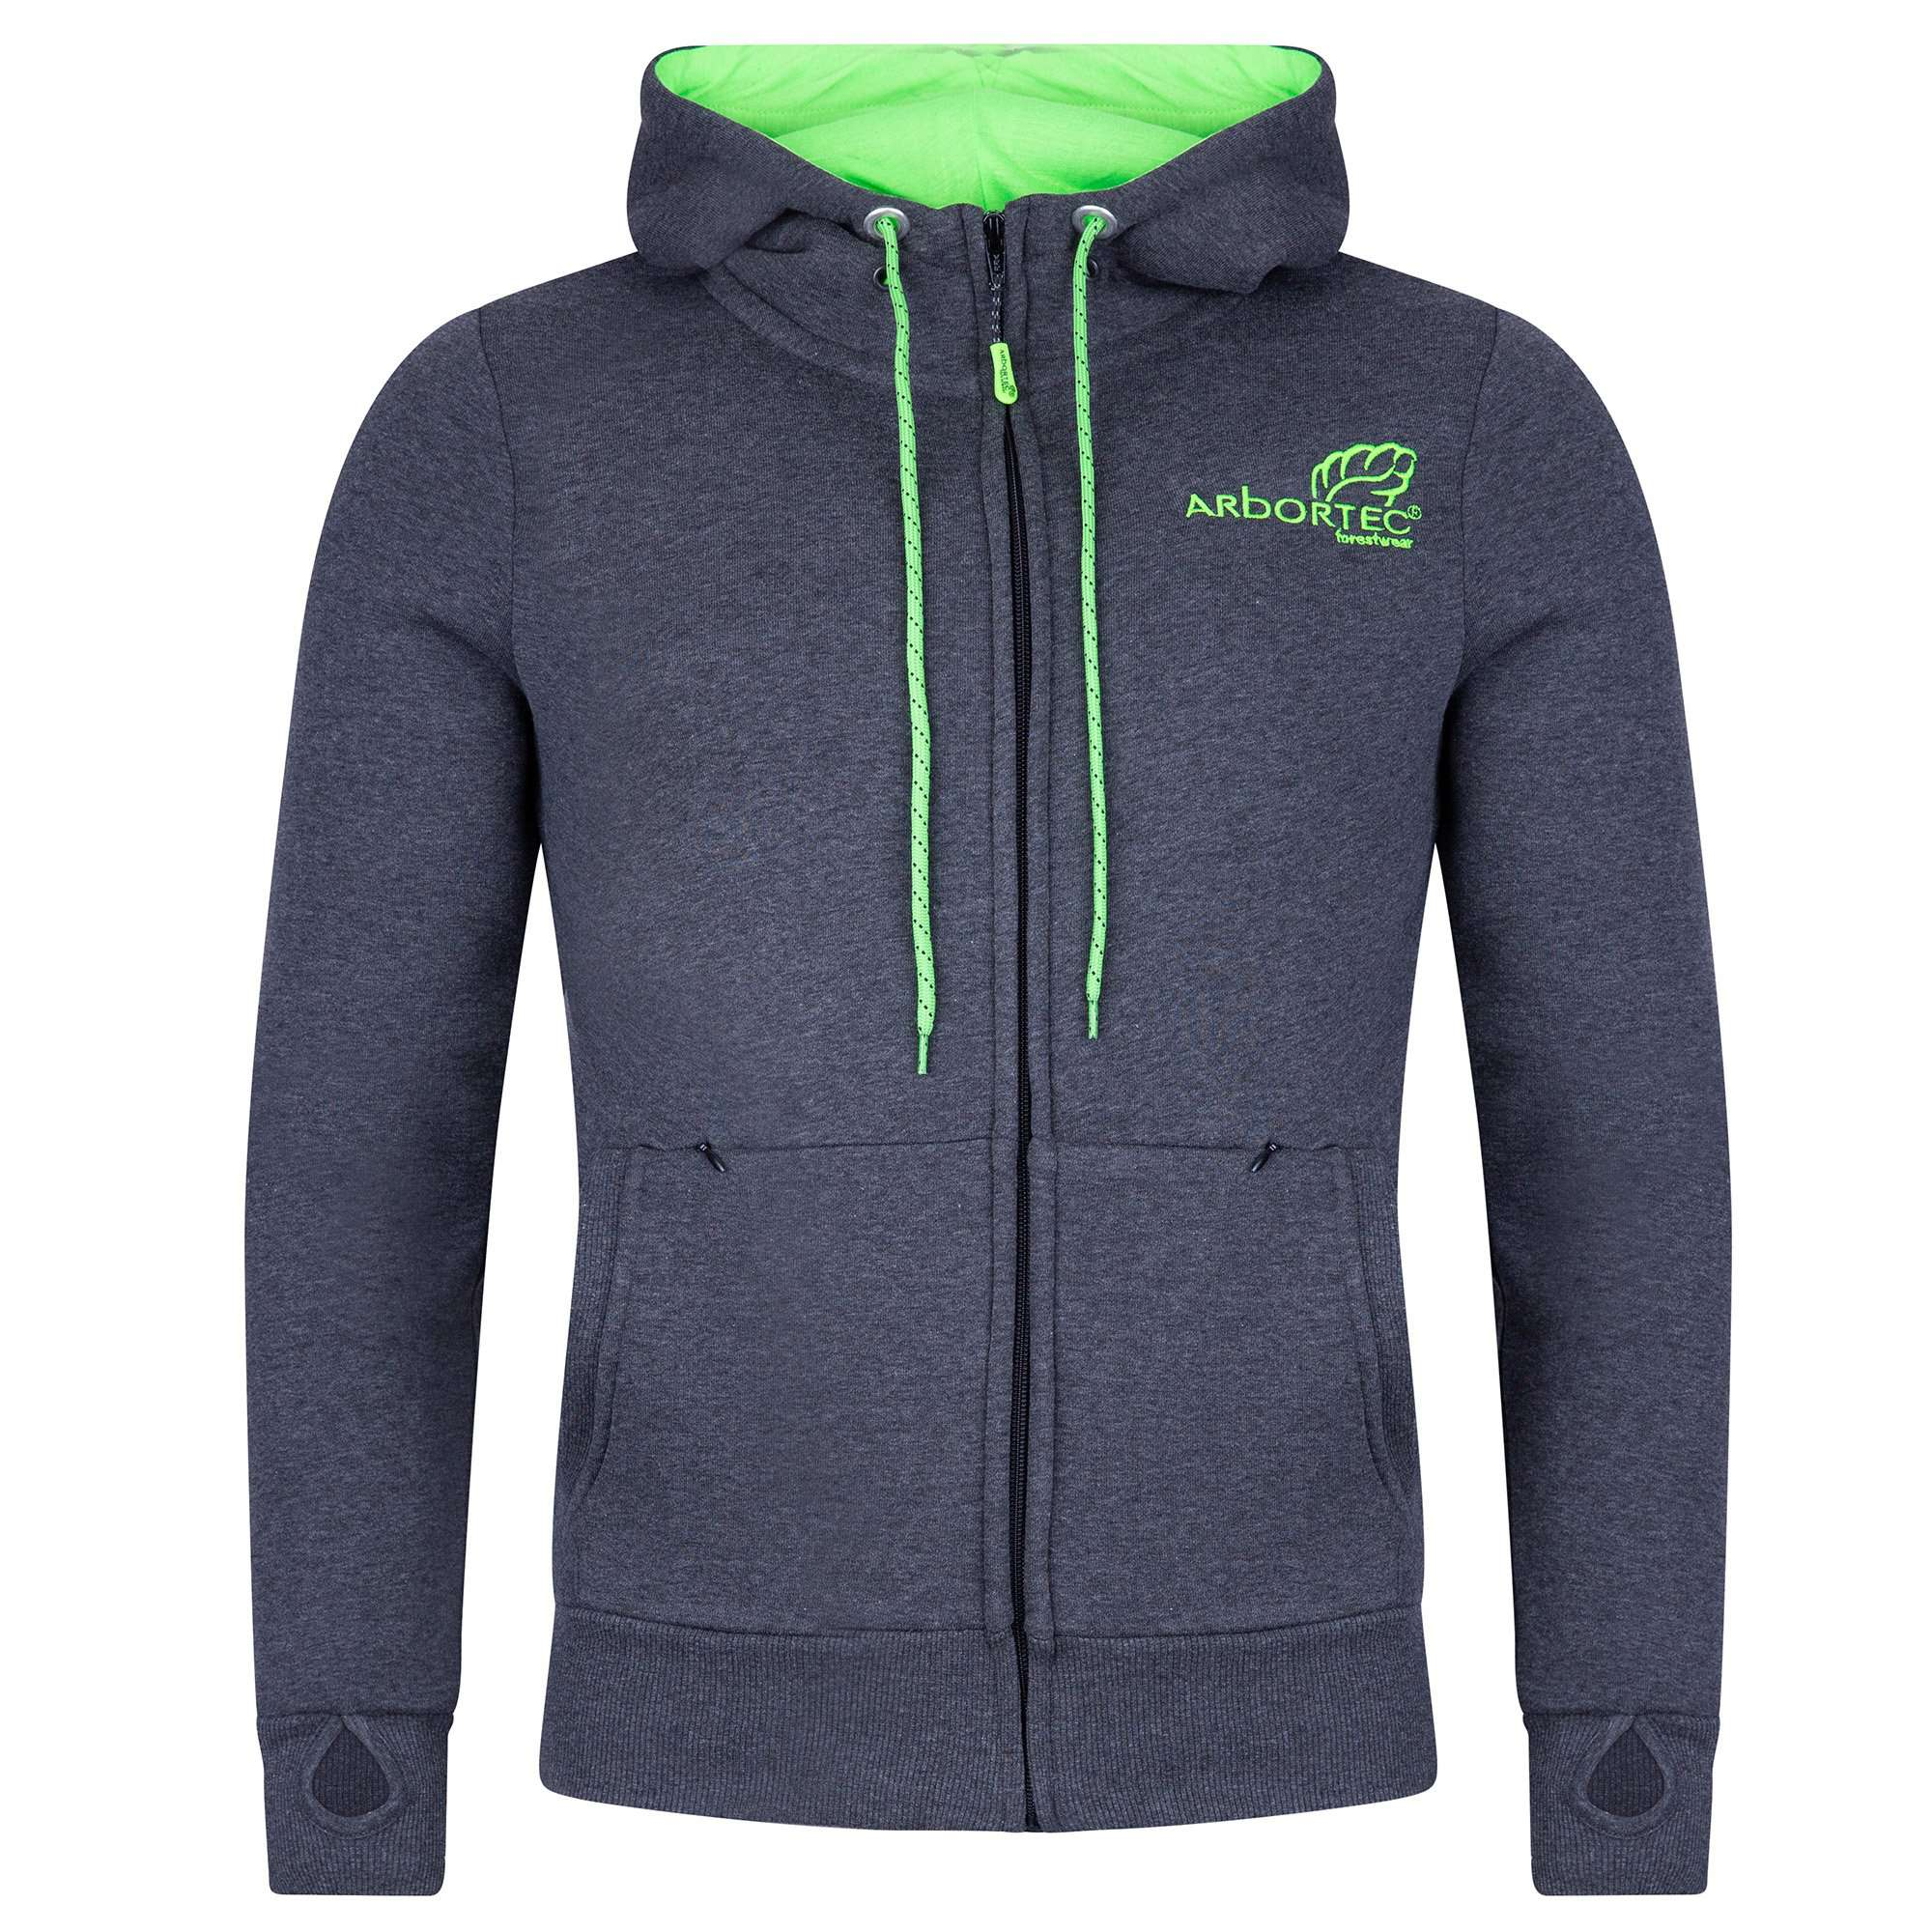 AT5020 Arbortec Zip Hoodie - Charcoal Grey